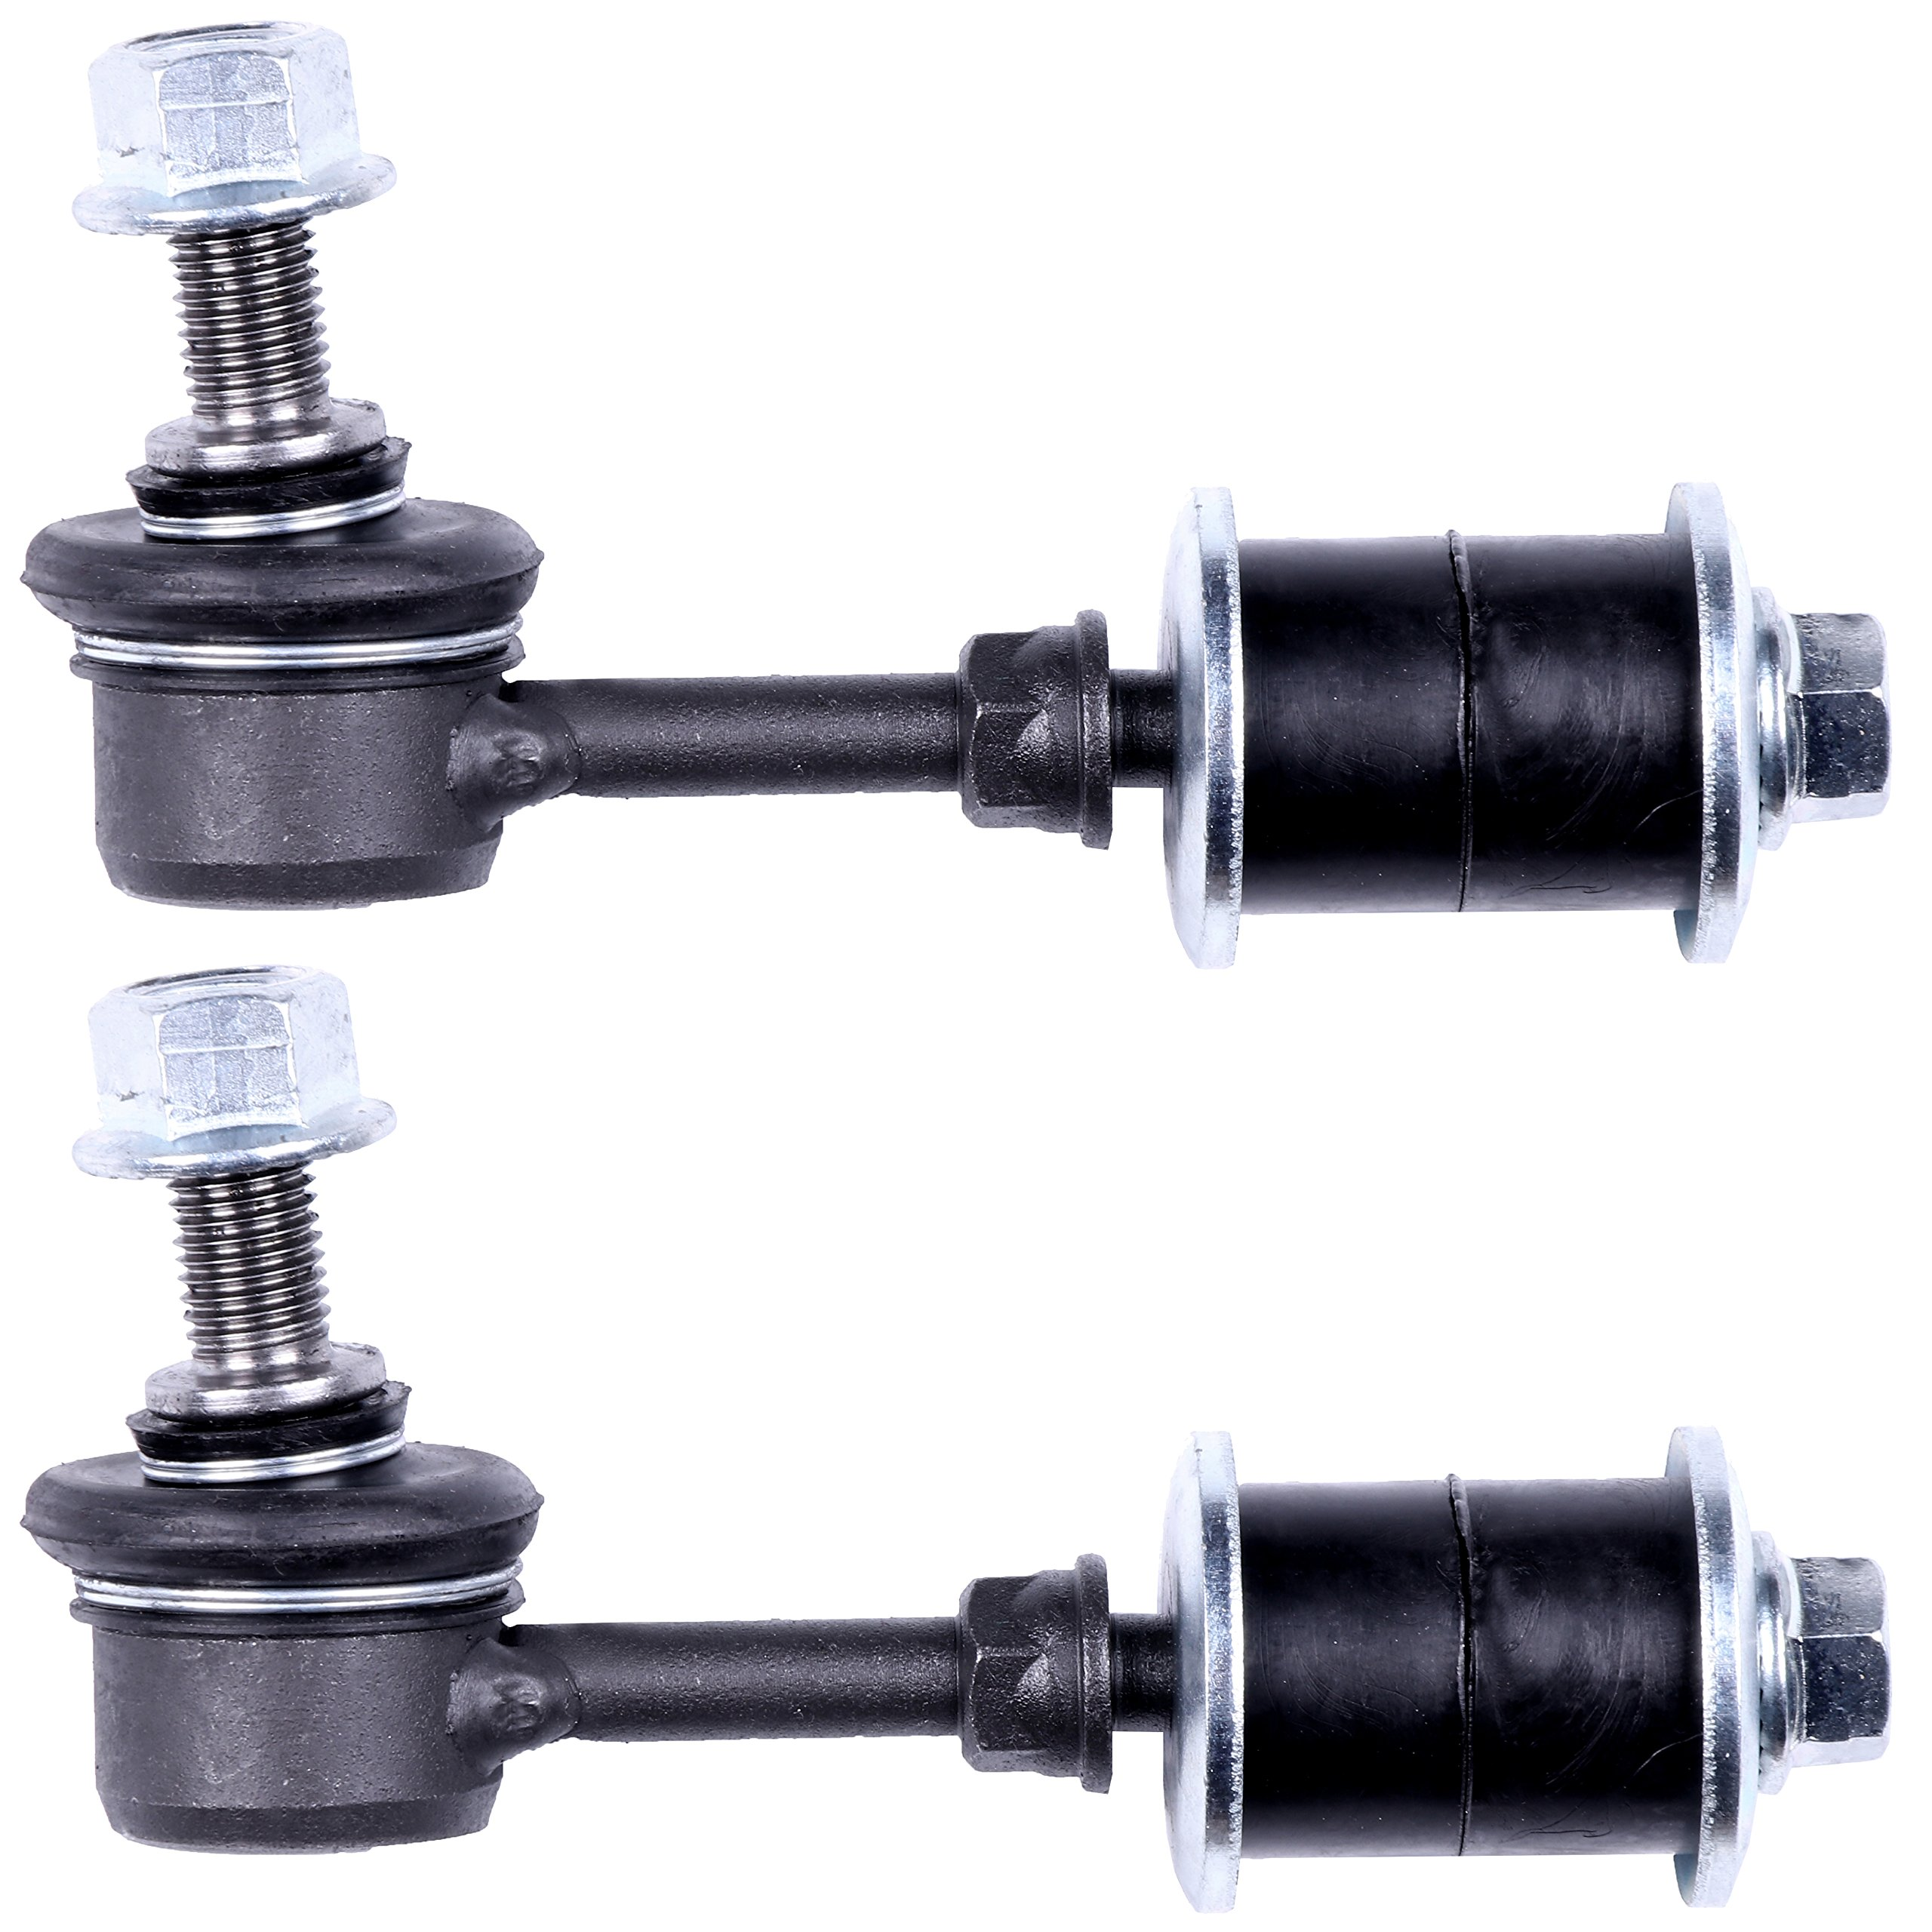 ECCPP Front Sway Bar End Link Steering Link for 1997 1998 1999 2000 2001 Honda Prelude (2pc)